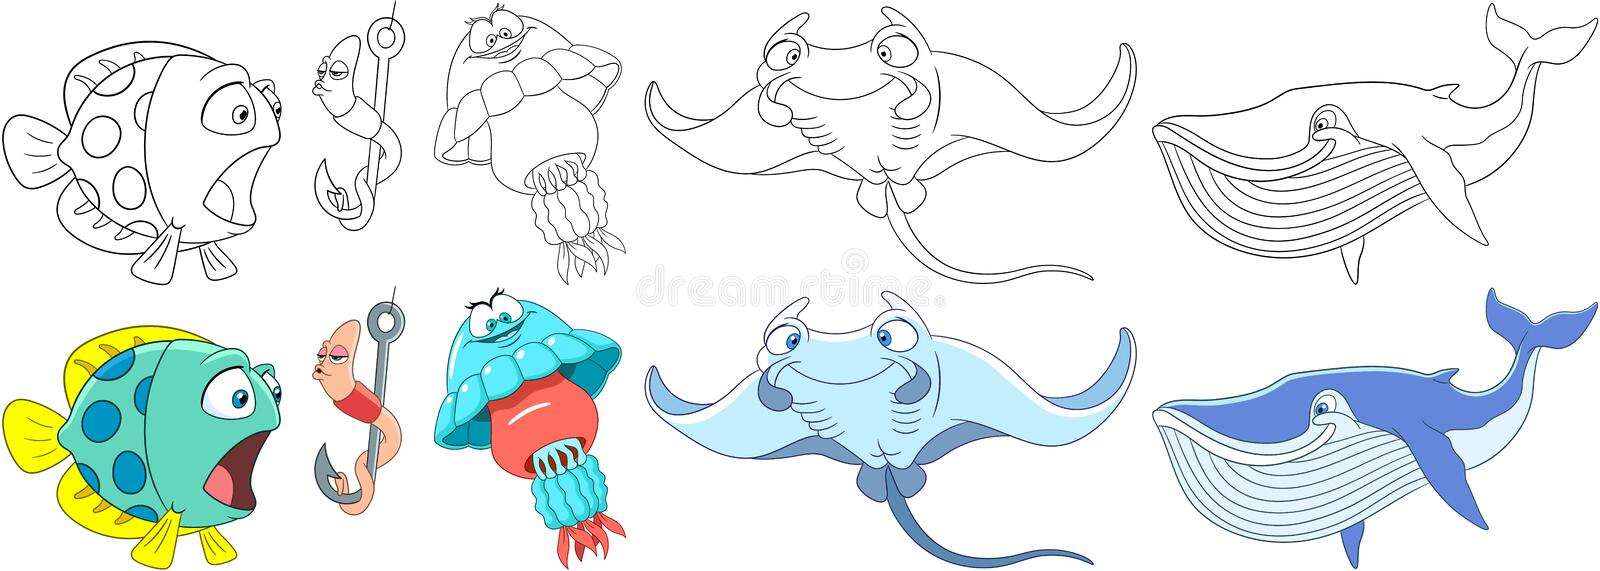 Cartoon underwater animals set. Cartoon animals set. Underwater fish, worm making air kiss, jellyfish medusa, manta ray stingray, blue whale cachalot. Coloring royalty free illustration